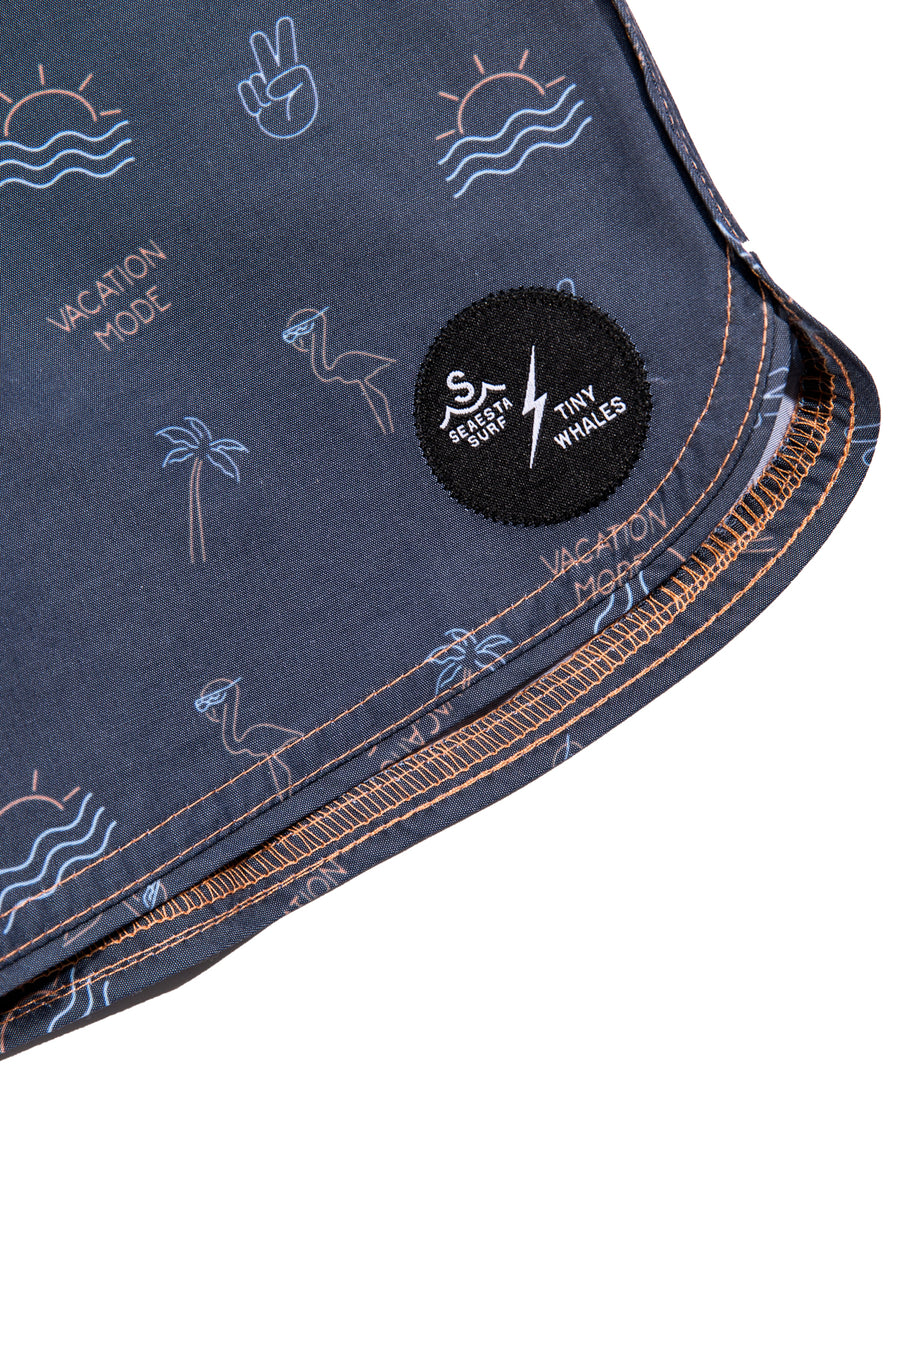 Seaesta Surf x Tiny Whales / Vacation Mode Boardshorts